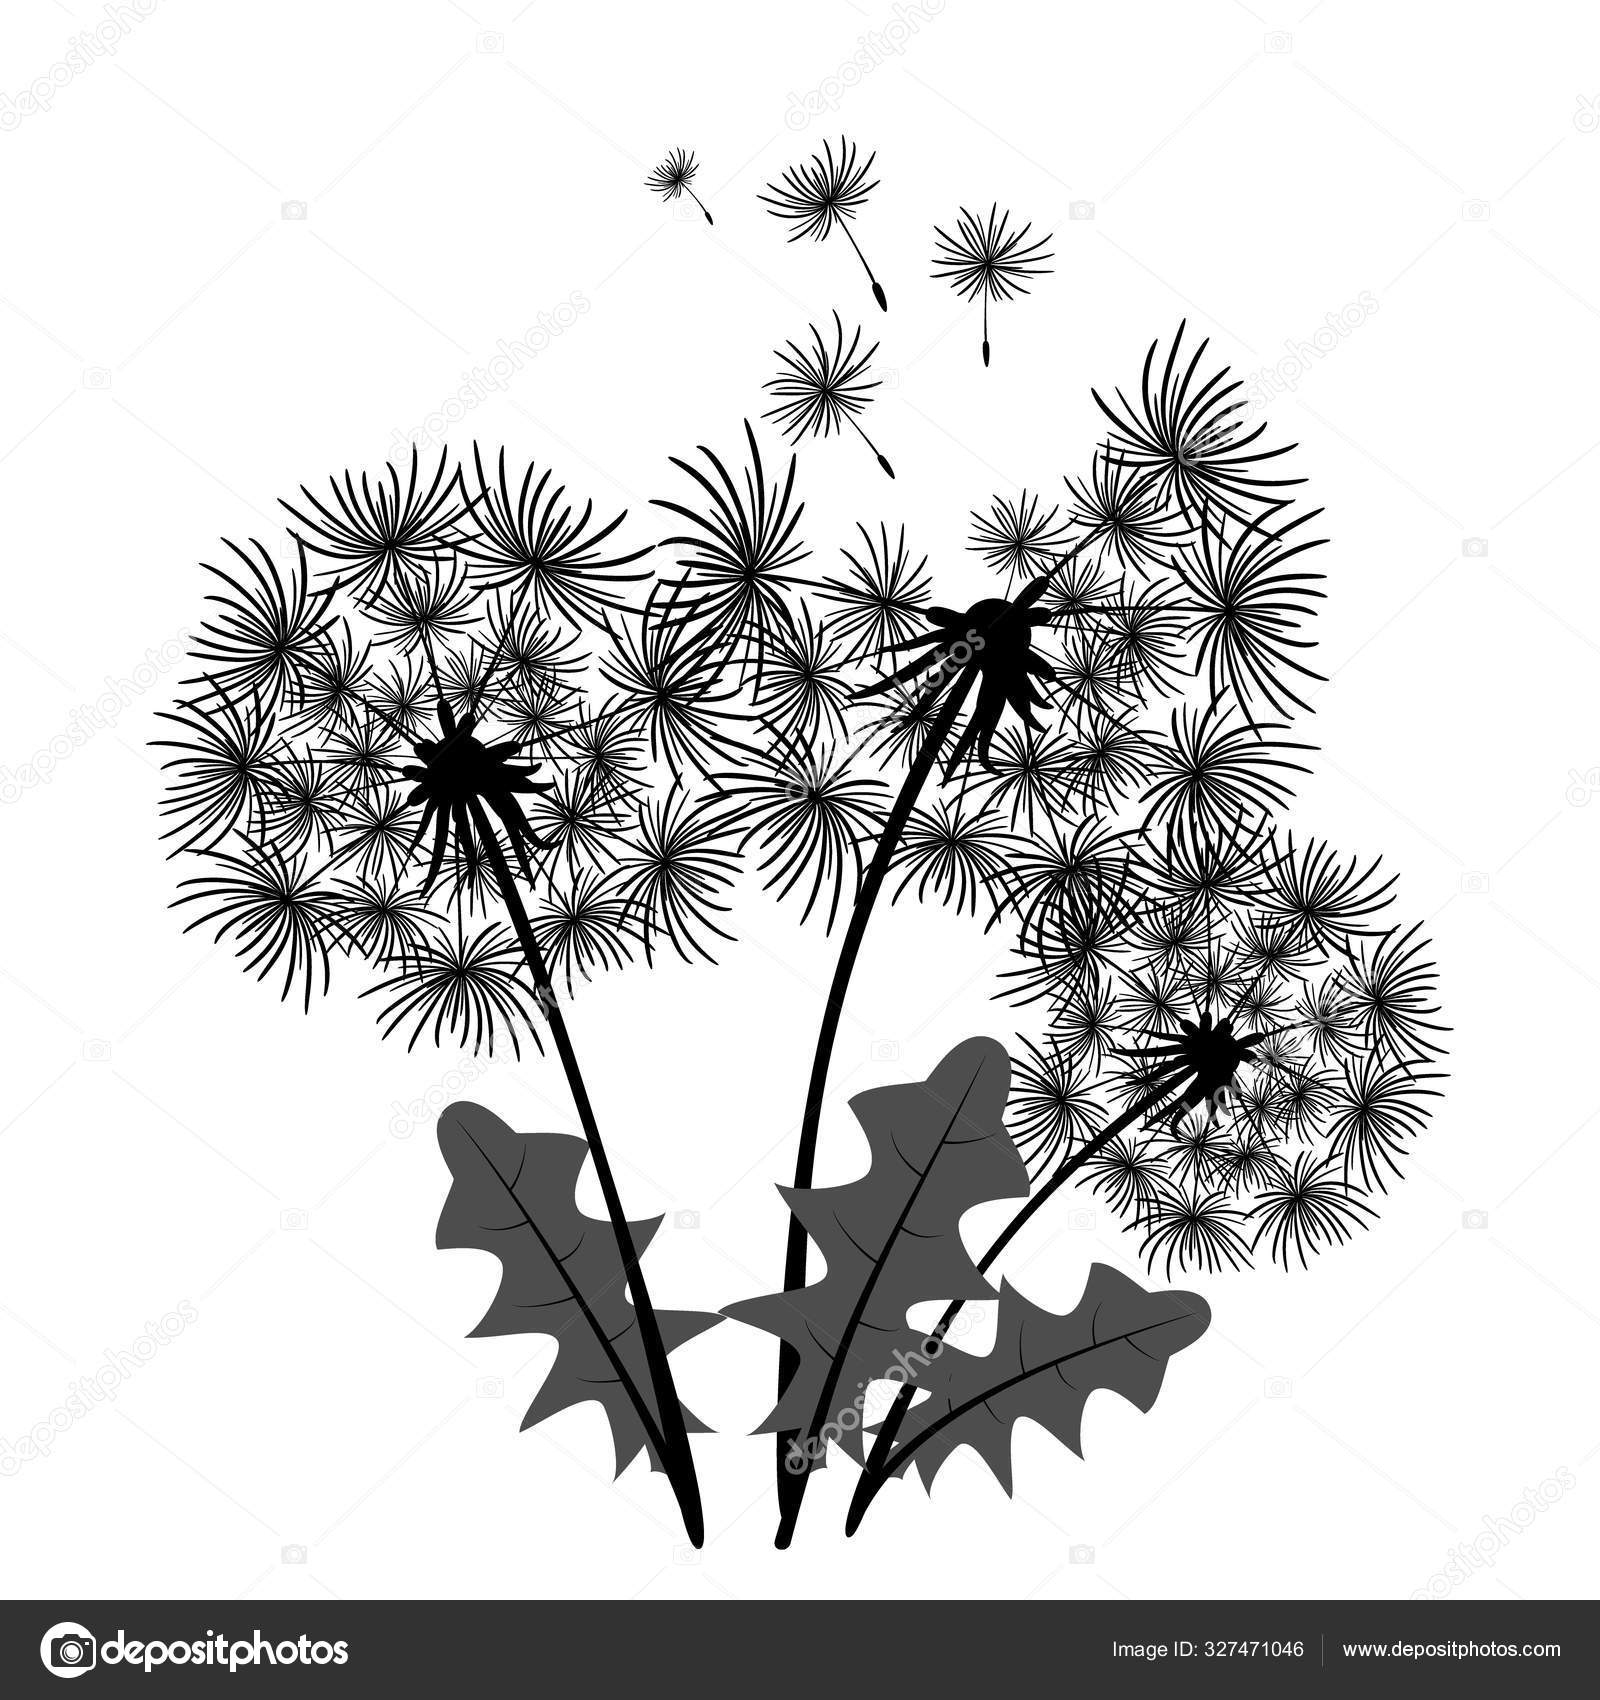 Bouquet Of Three Dandelion Flowers Black White Illustration Floral Clipart For Design Clothes Fashion Element Allegory Black Drawing Isolated On White Background Home Decor Stock Vector C Gutzol Ukr Net 327471046